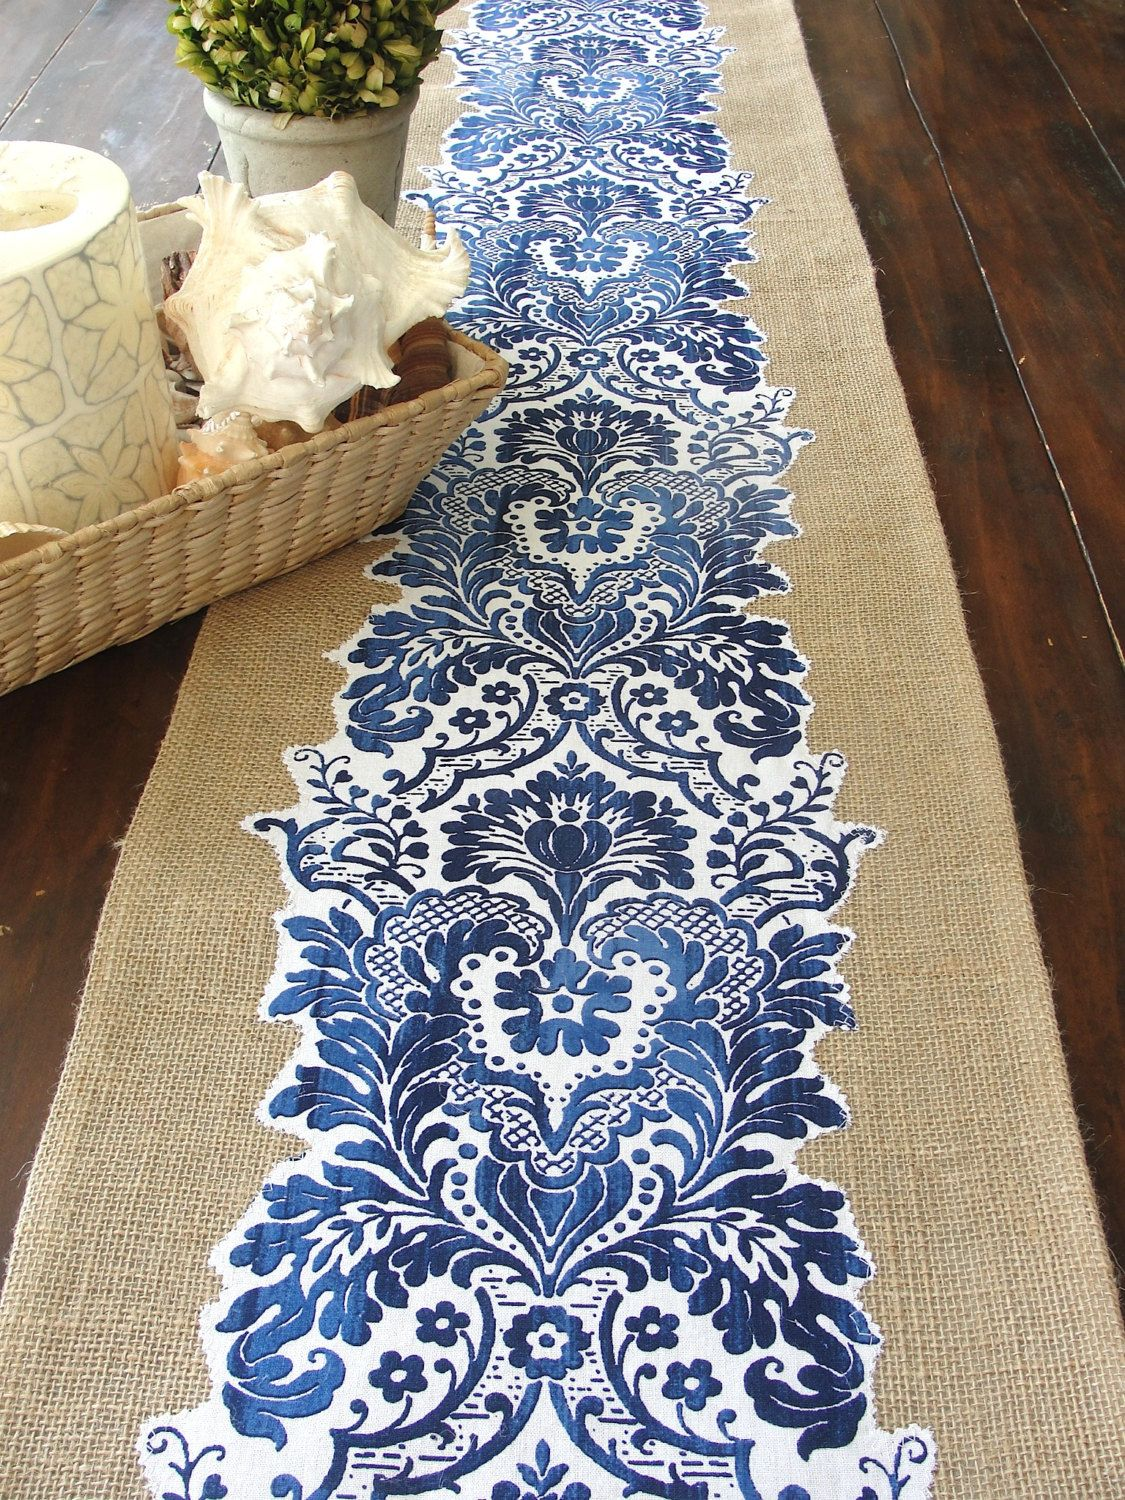 Attirant Burlap Table Runner Extra Long Blue And White By HotCocoaDesign, Add Coral  Flowers In Blue And White Milk Glass Vases.